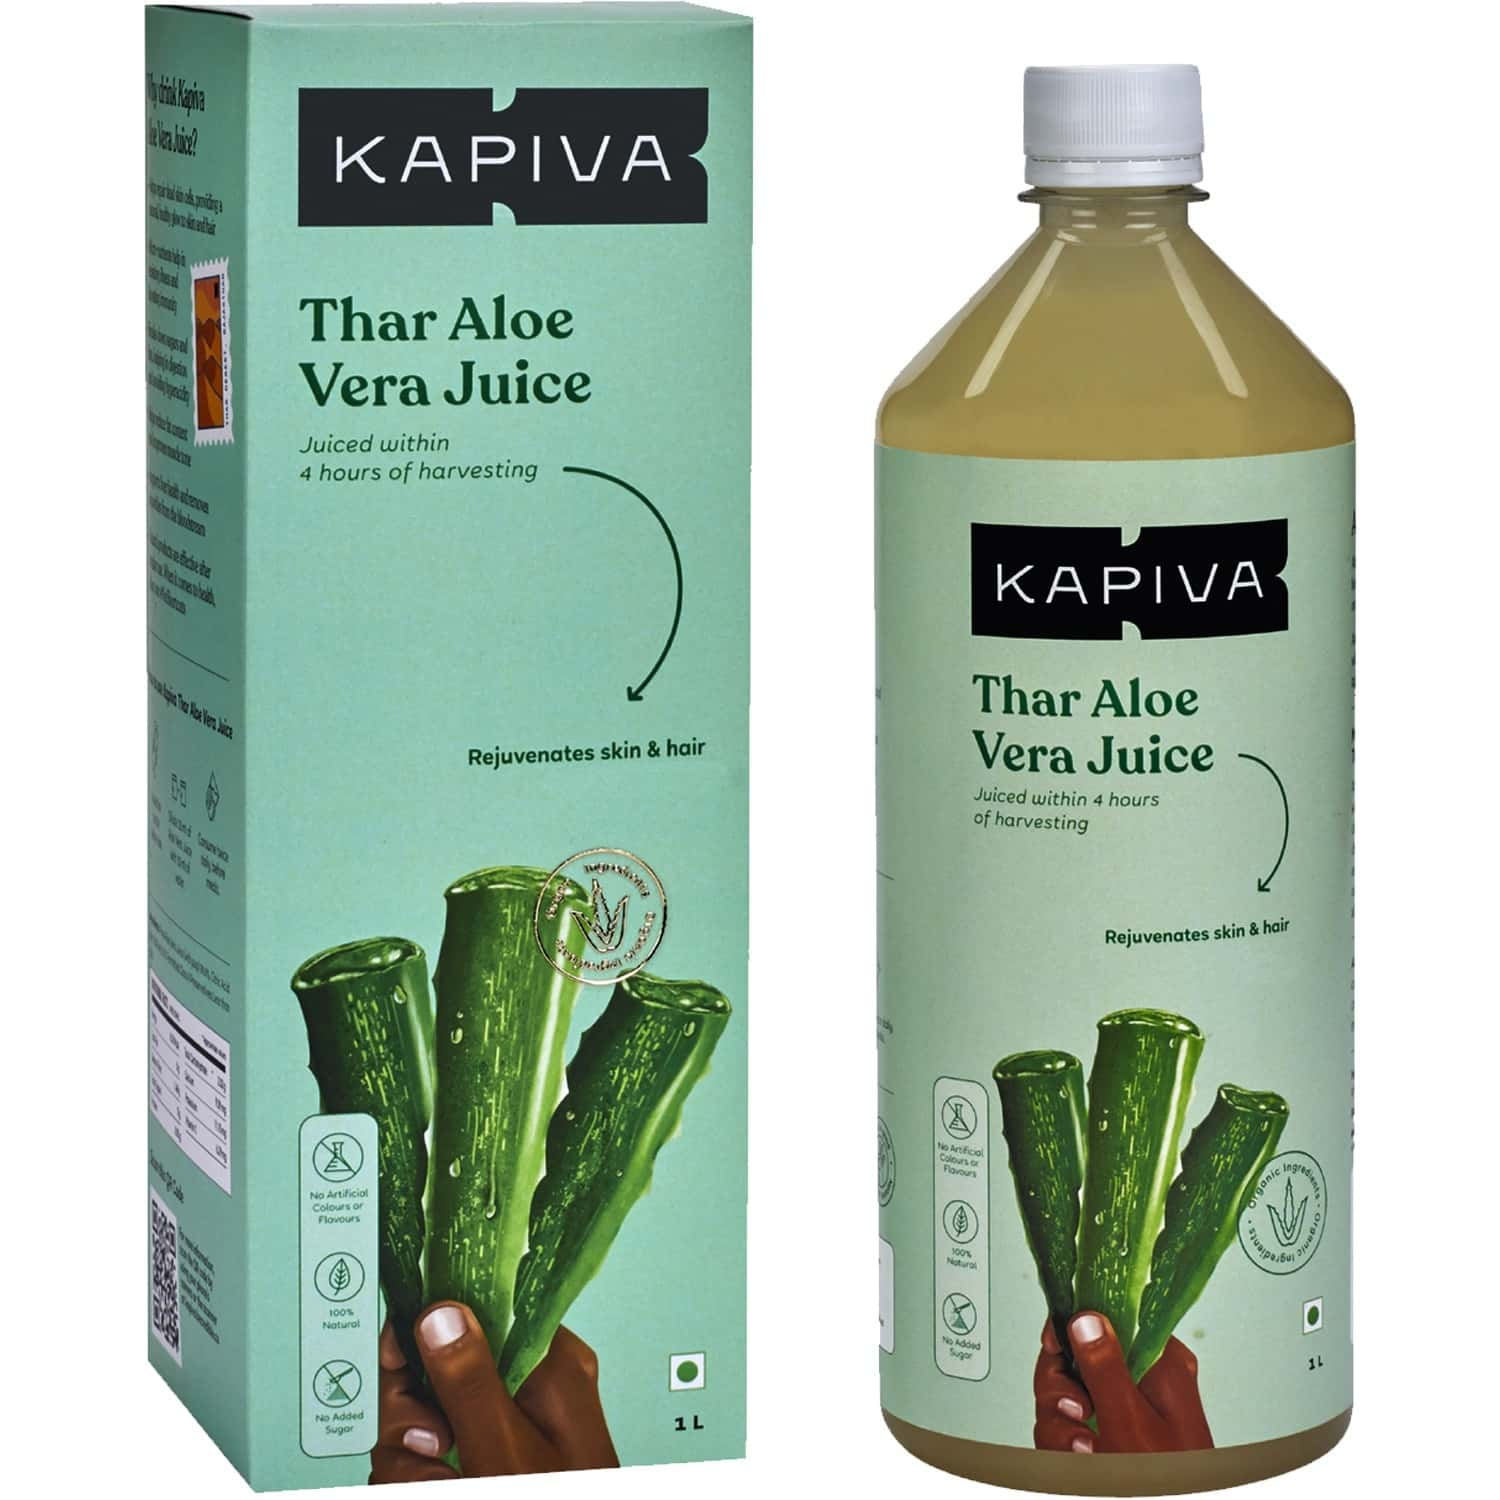 Kapiva Thar Aloe Vera Juice (with Pulp) | Rejuvenates Skin And Hair | Natural Juice Made Within 4 Hours Of Harvesting | No Added Sugar - 1l